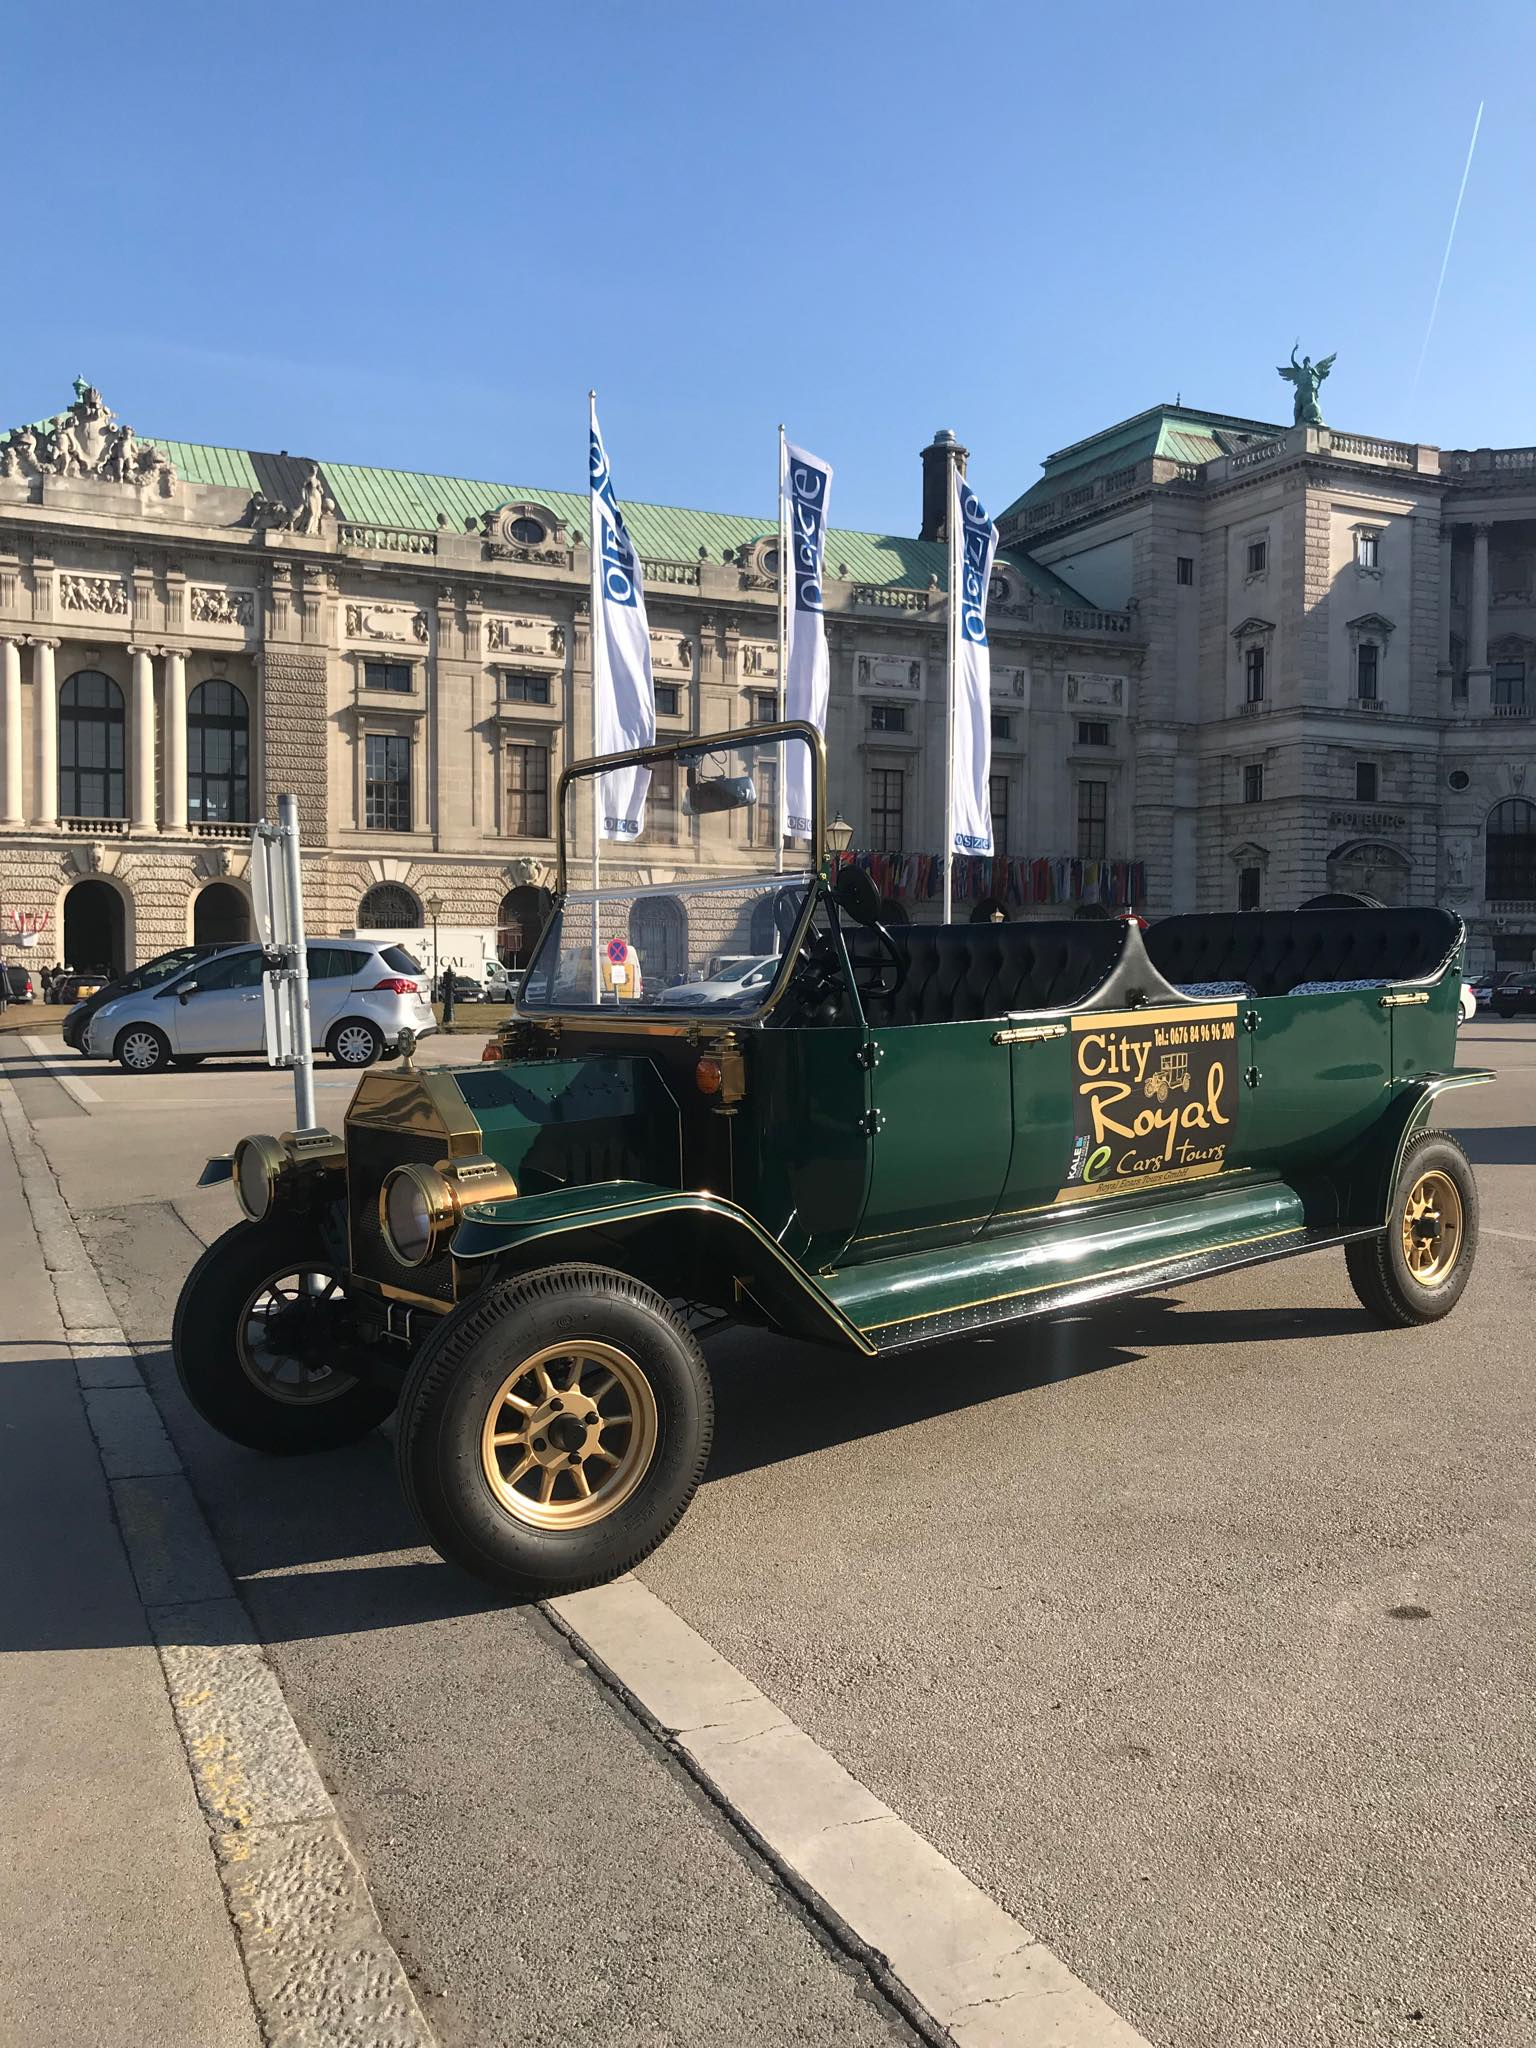 Let's go sightseeing in Vienna as a royal 19th century personage